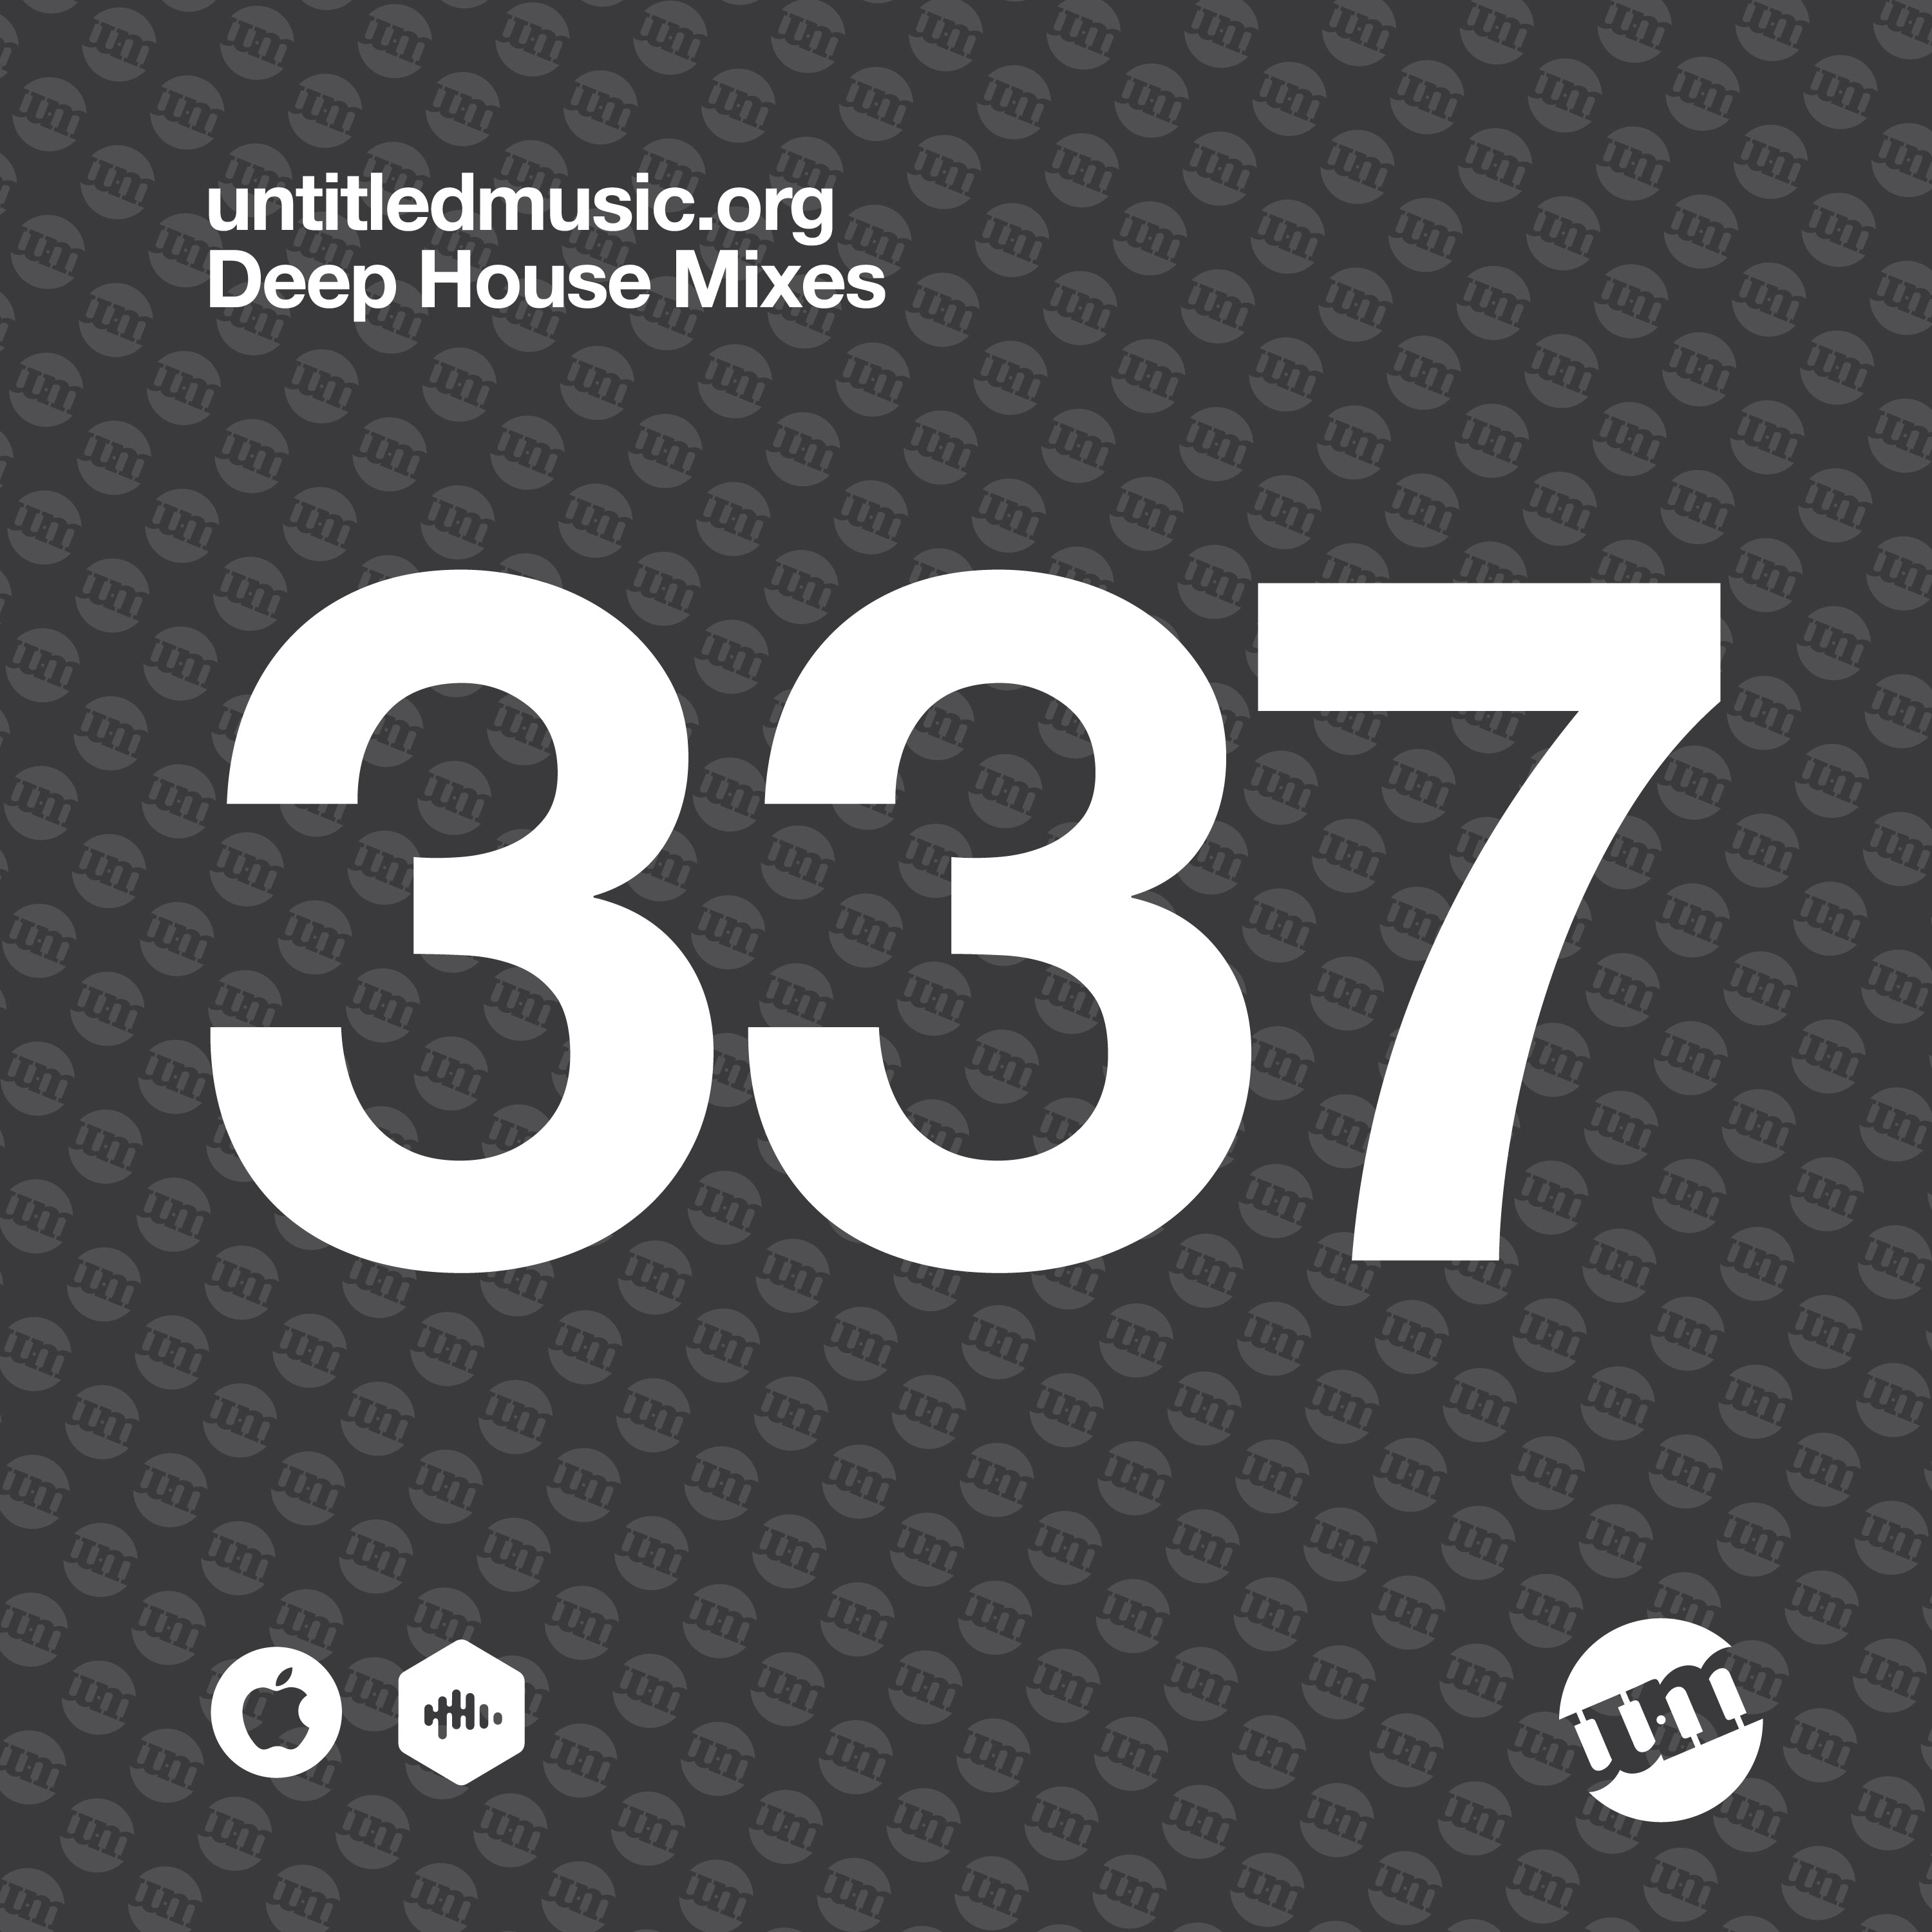 UM337 - Deep House Mix (06.07.20)